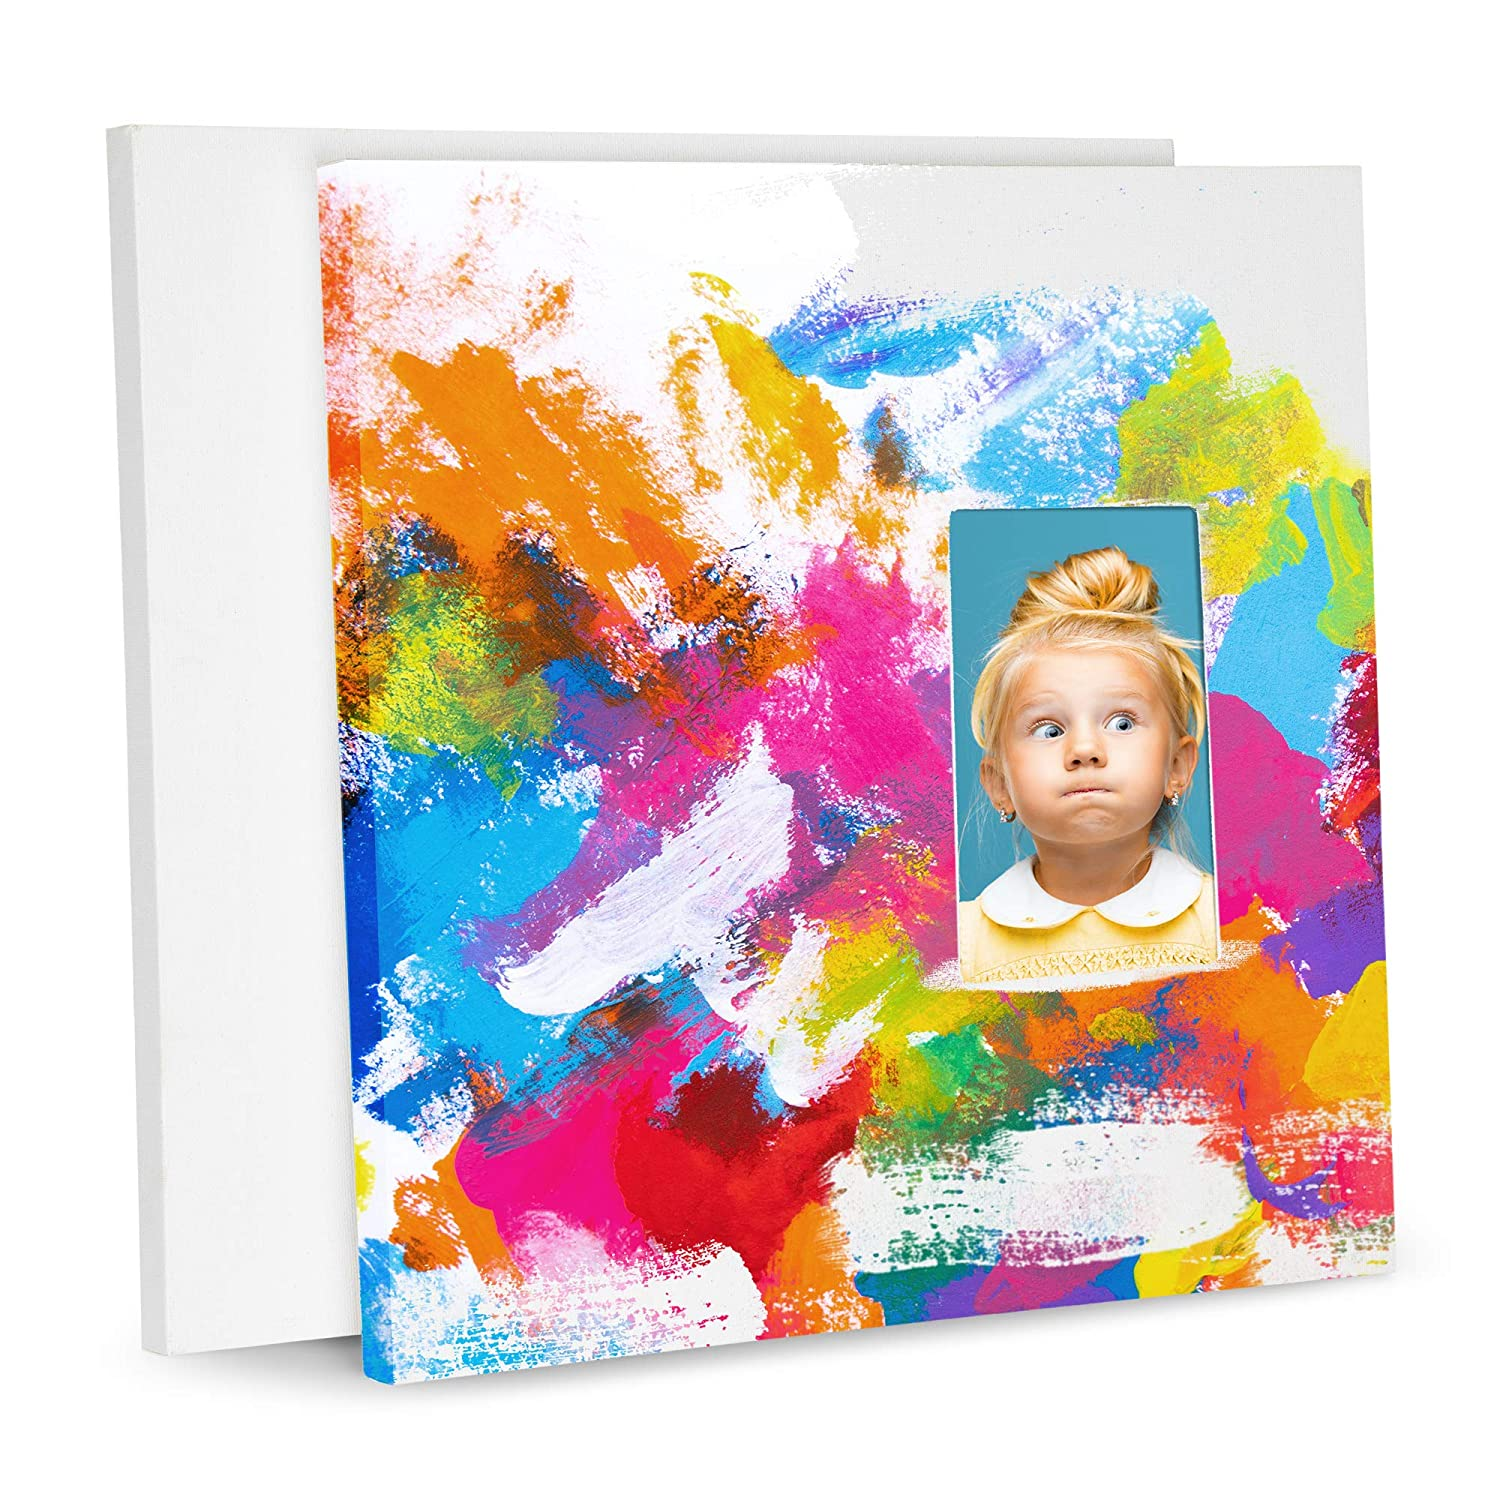 Premium Arts and Crafts canvasses Painting for Kids, Picture Frame toddlers art boards craft projects sets, White canvases Father & Mothers day birthday Gifts, baby footprint canvas board supplies kit